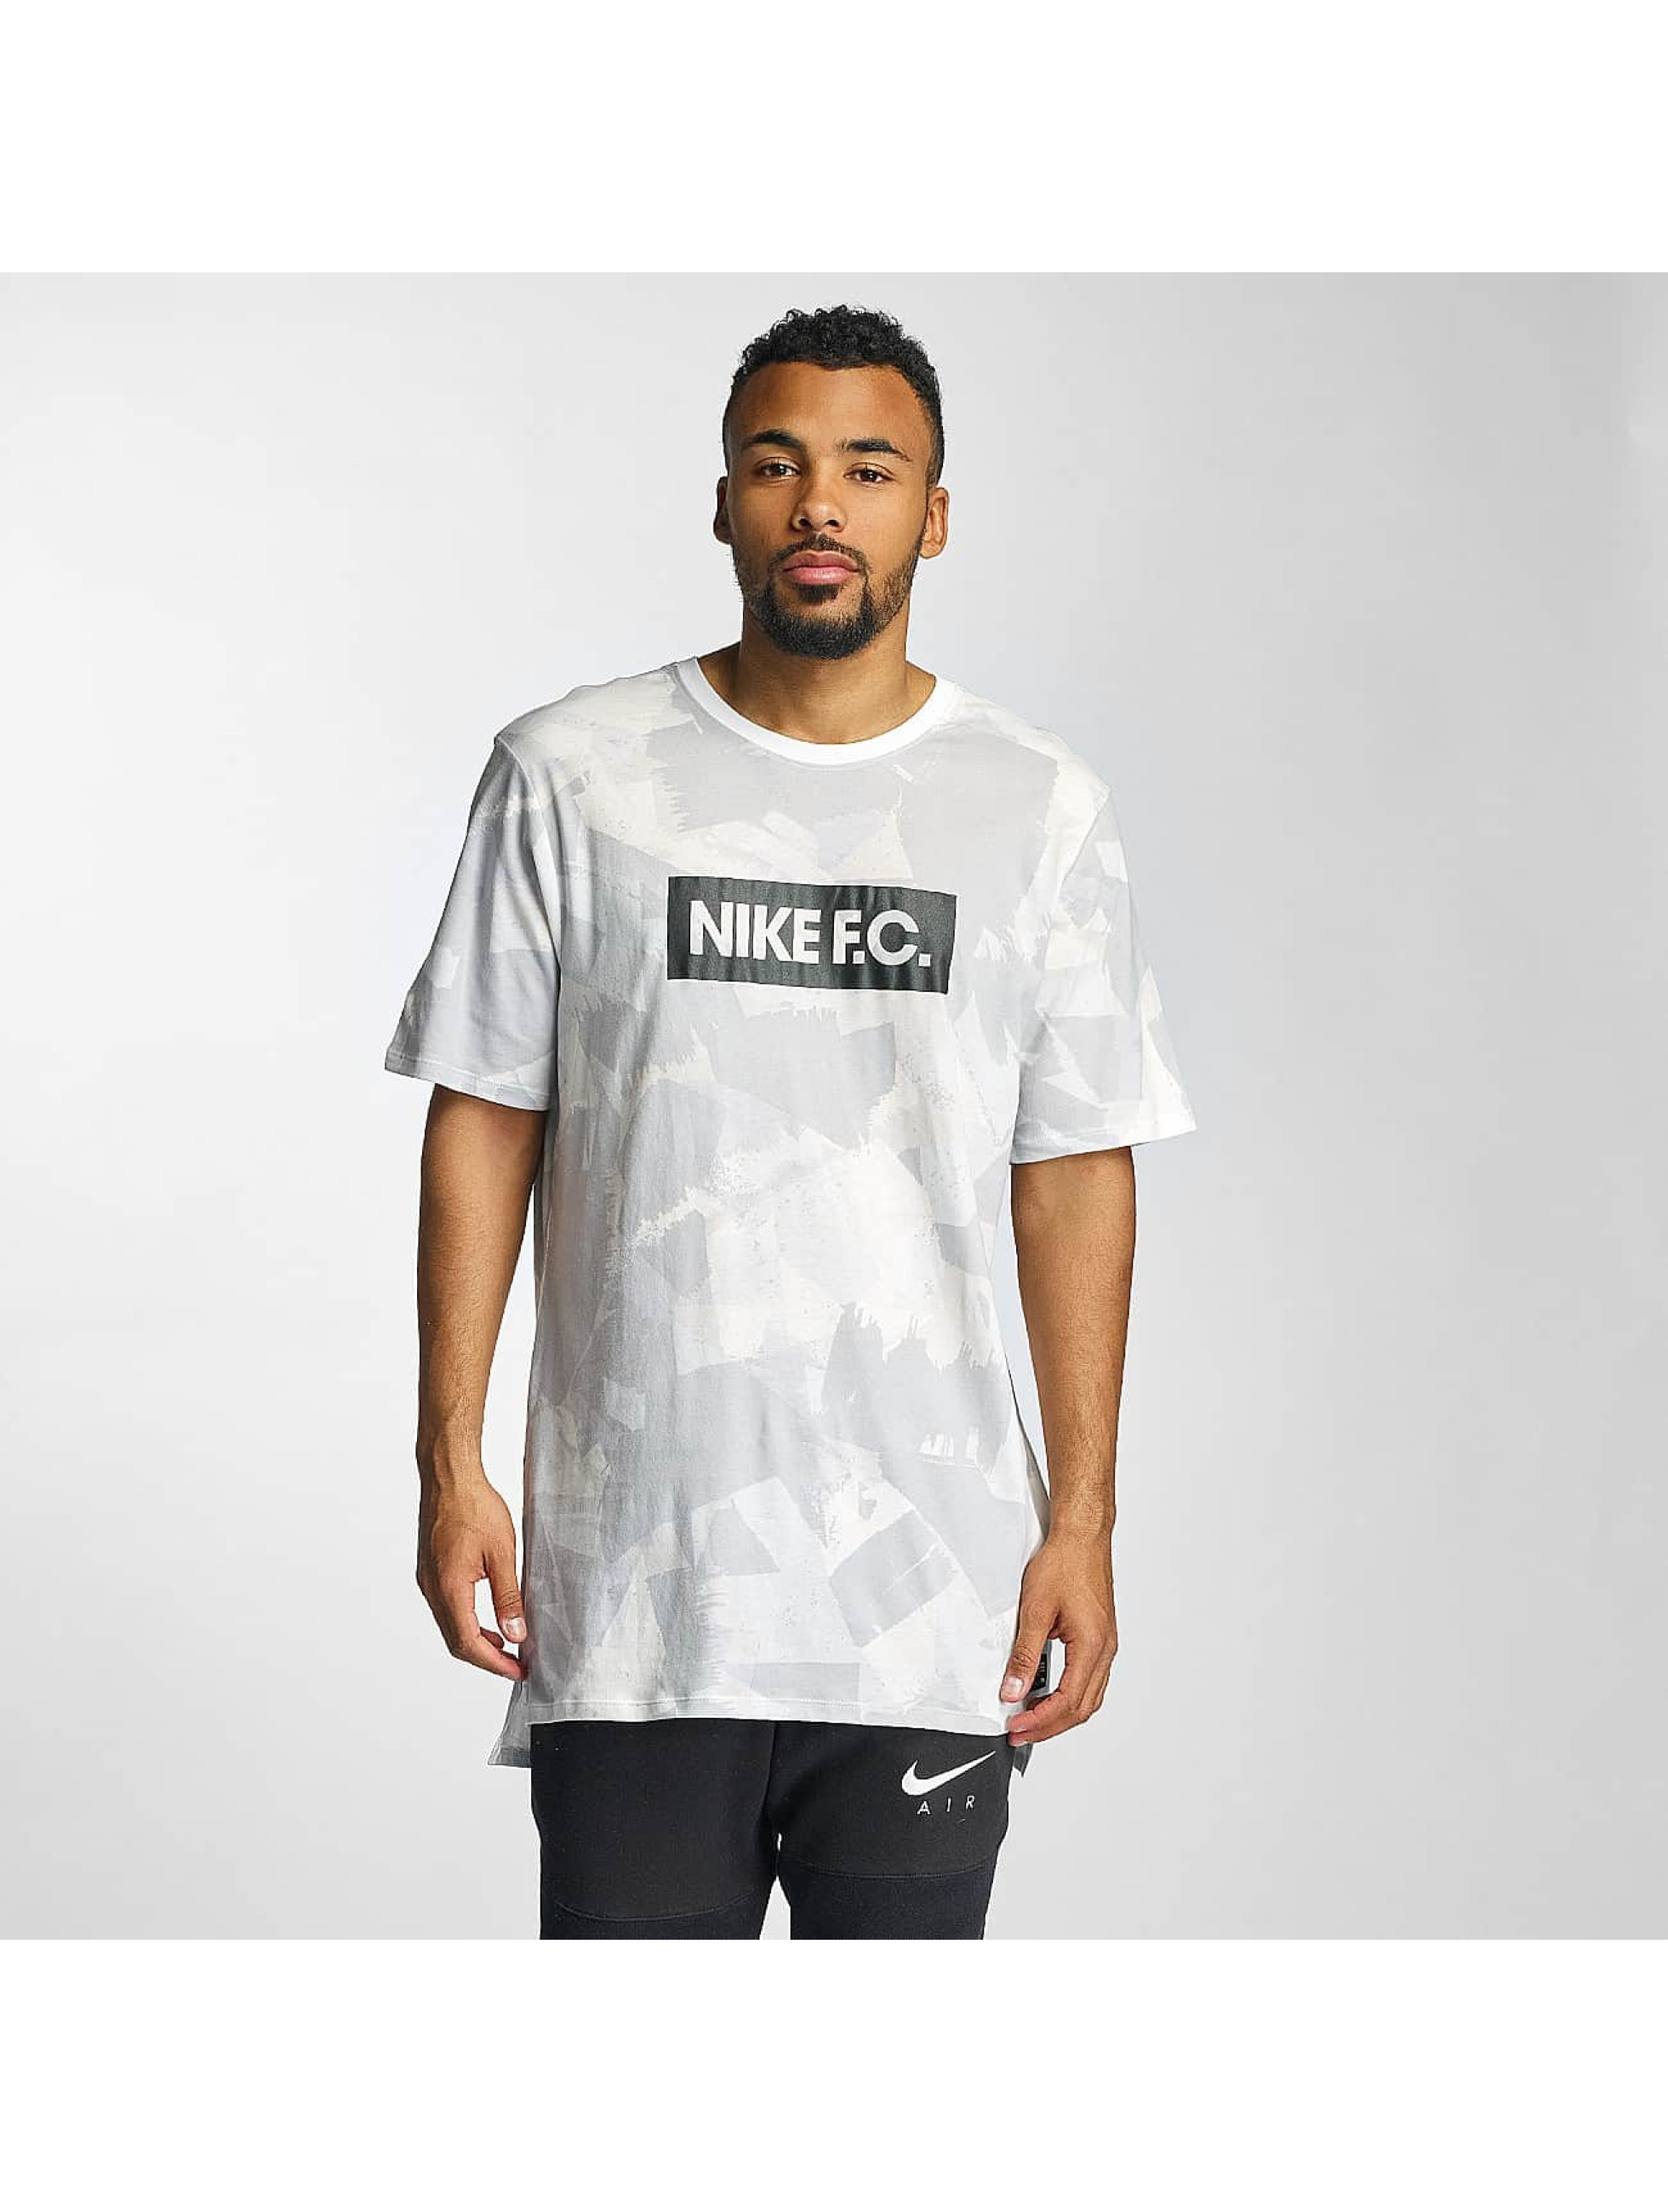 Nike Tall Tees FC AOP 4 grey